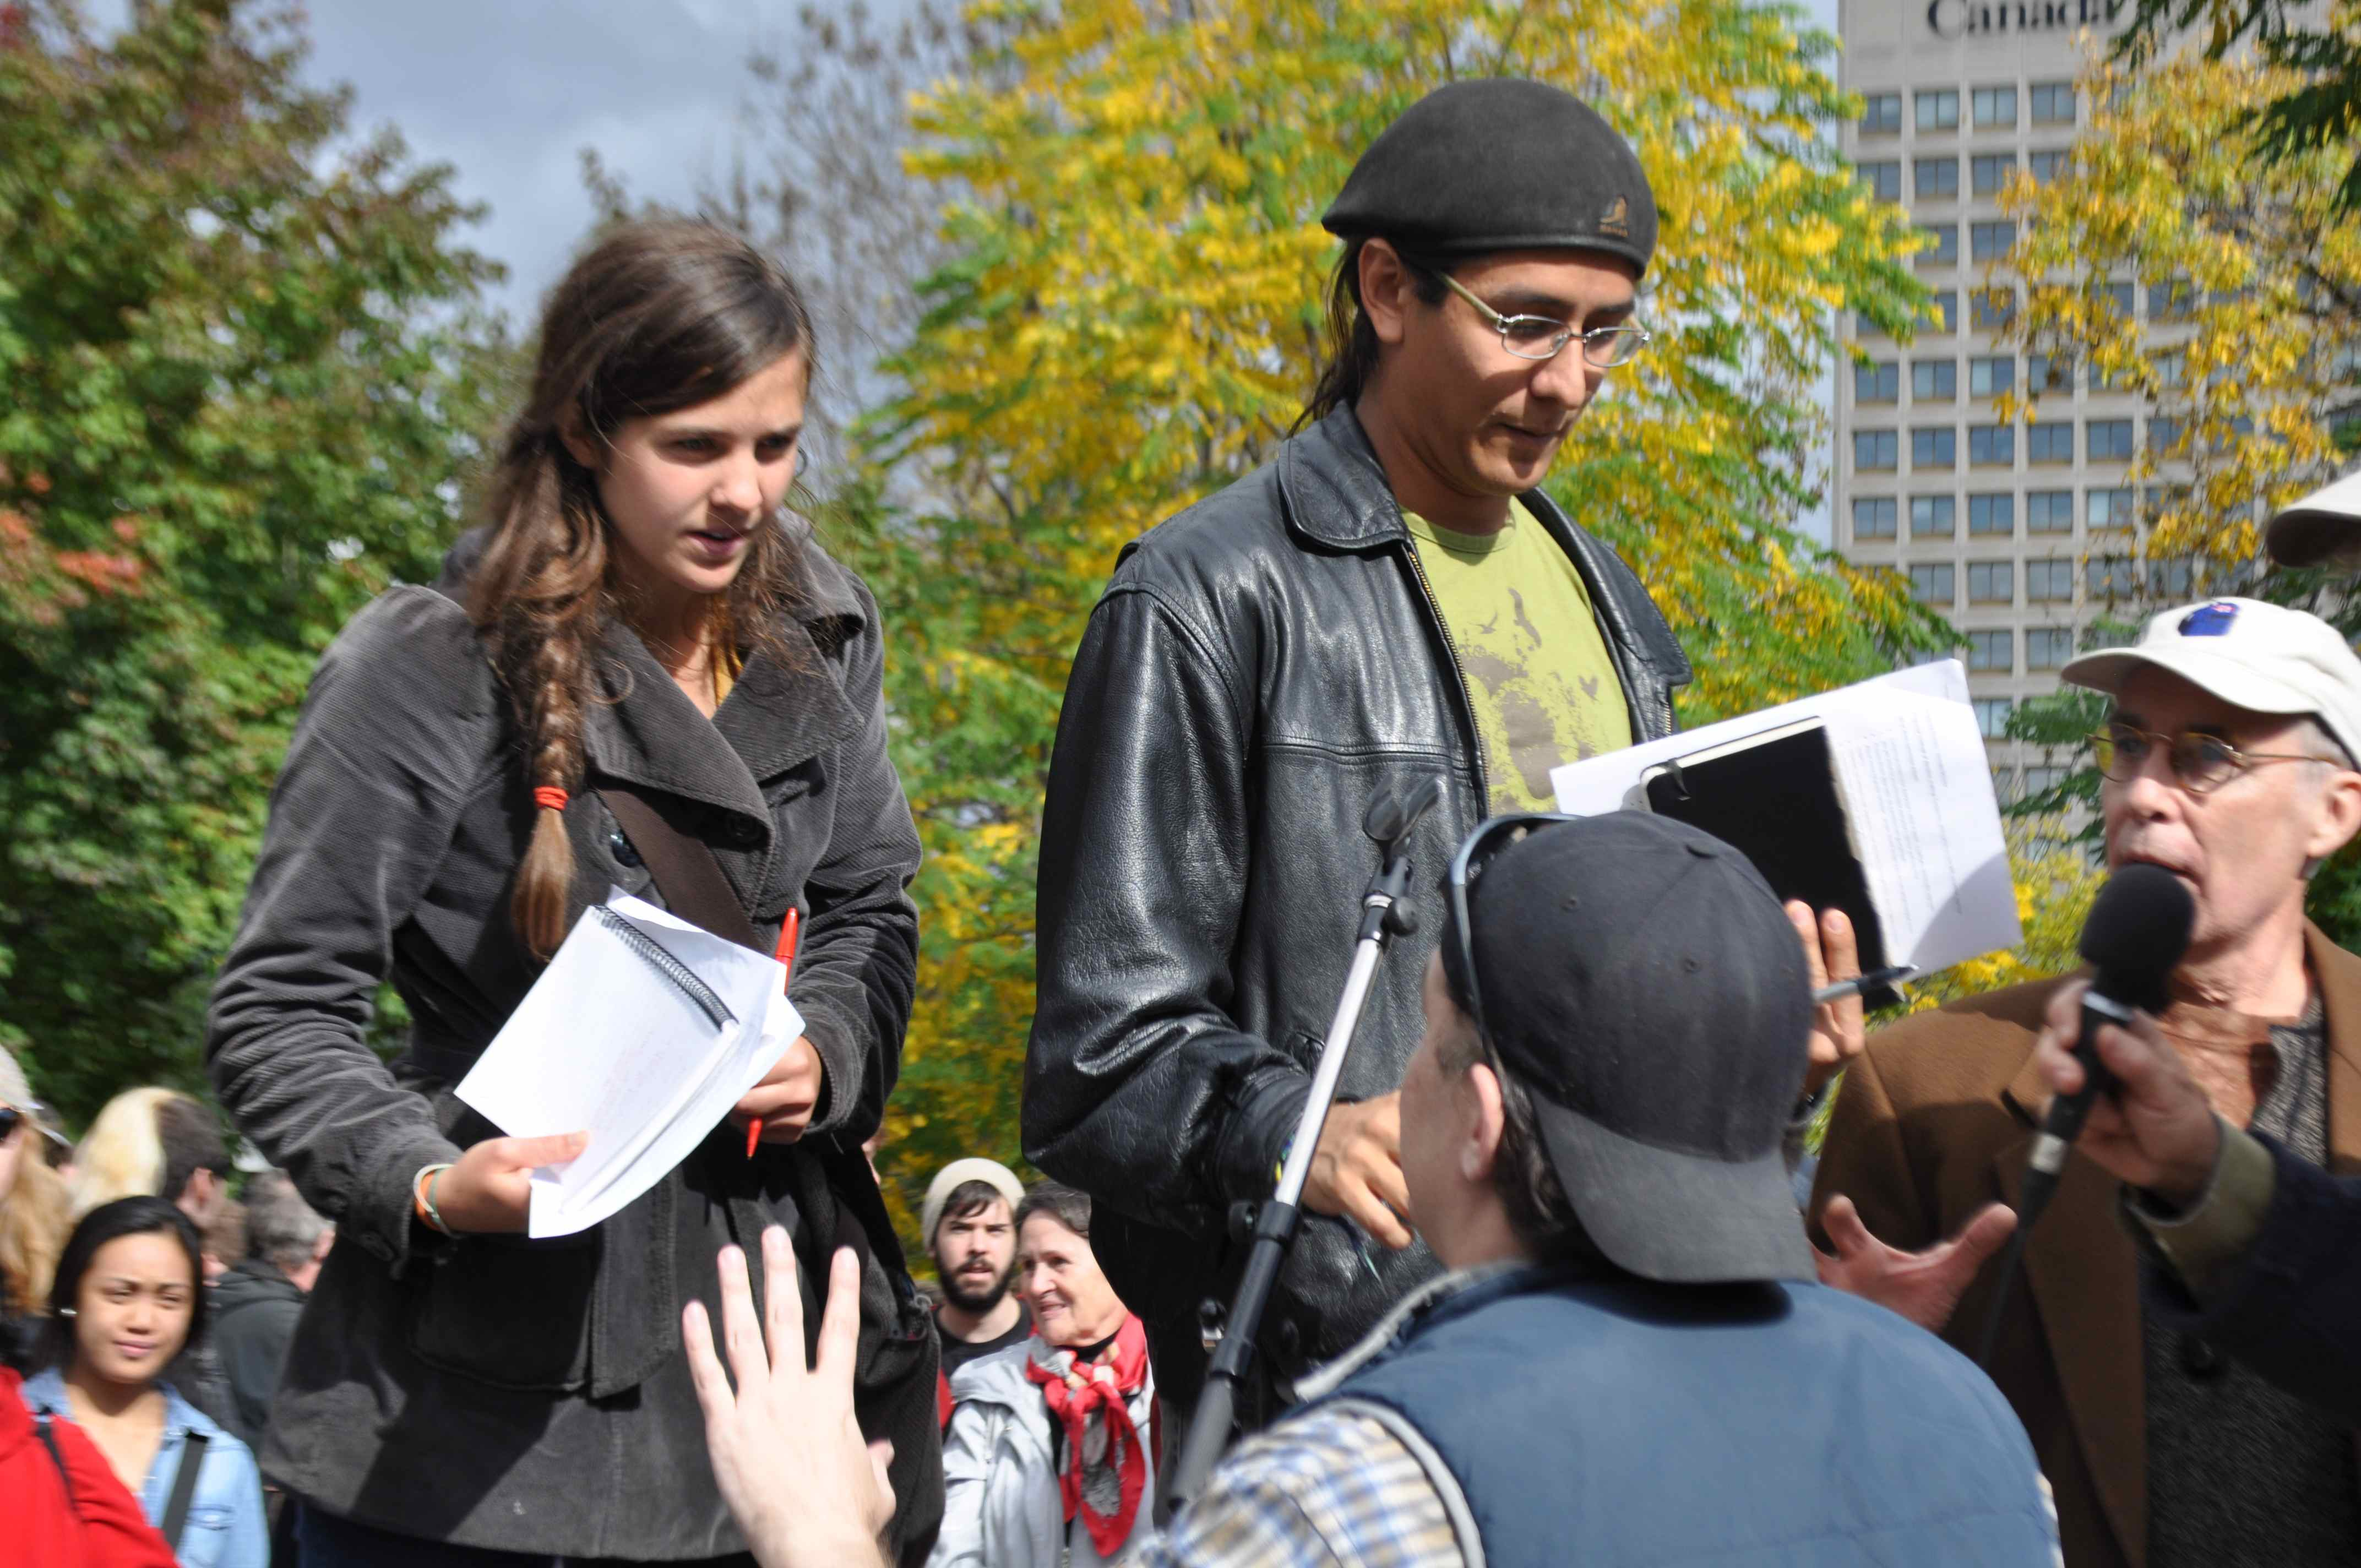 POLITICS CHATTER: Occupy Ottawa was a misfire… but maybe the timing's just off.